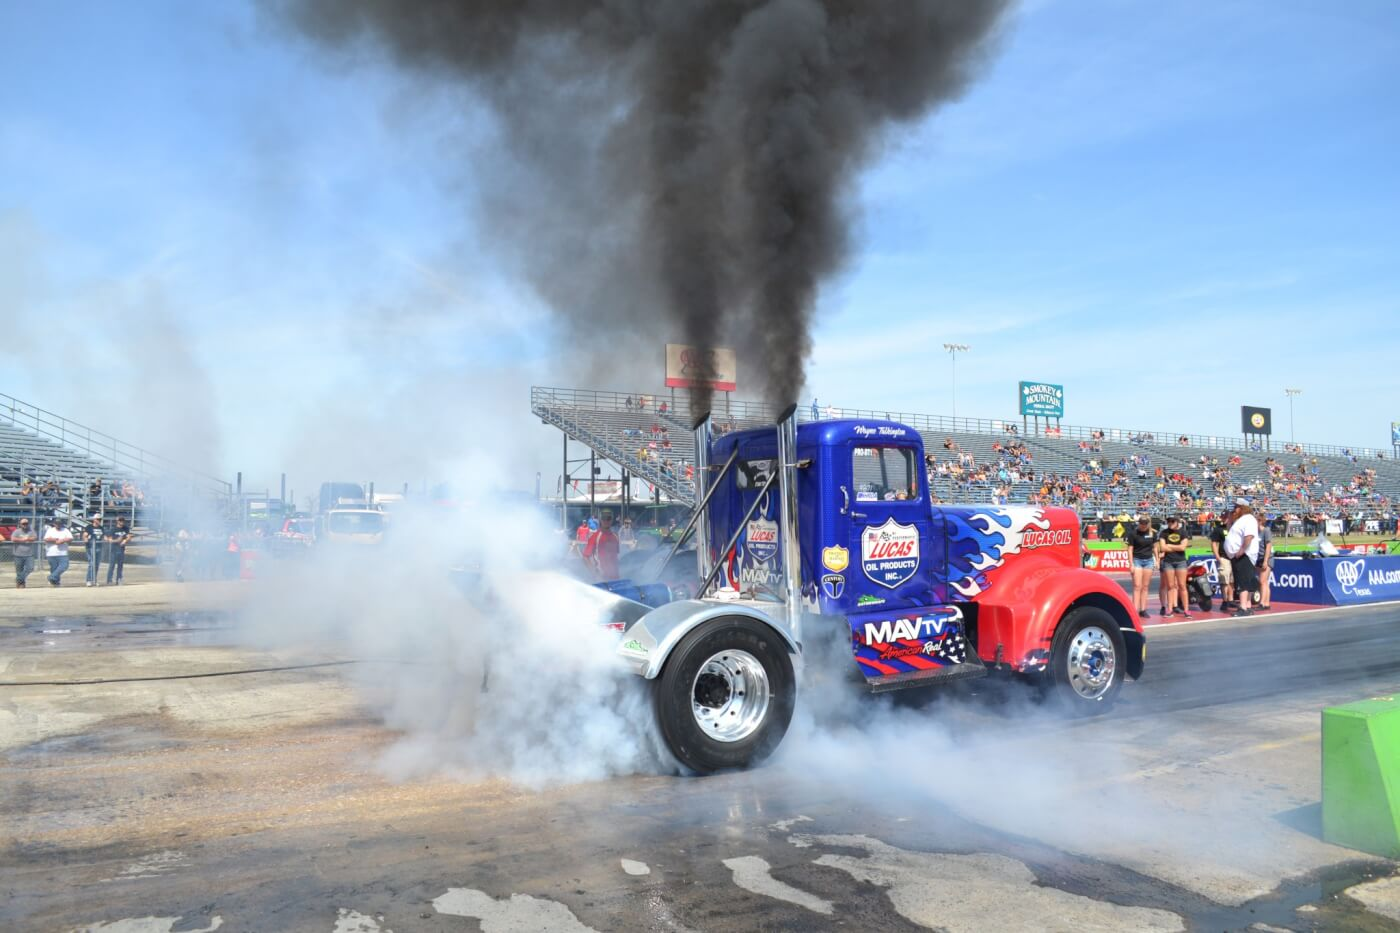 In addition to the pickups, two classes of semi trucks were in attendance at the World Finals. Wayne Talkington took the win in the Hot Rod Semi class, with an impressive 12.14-second elapsed time in the finals.